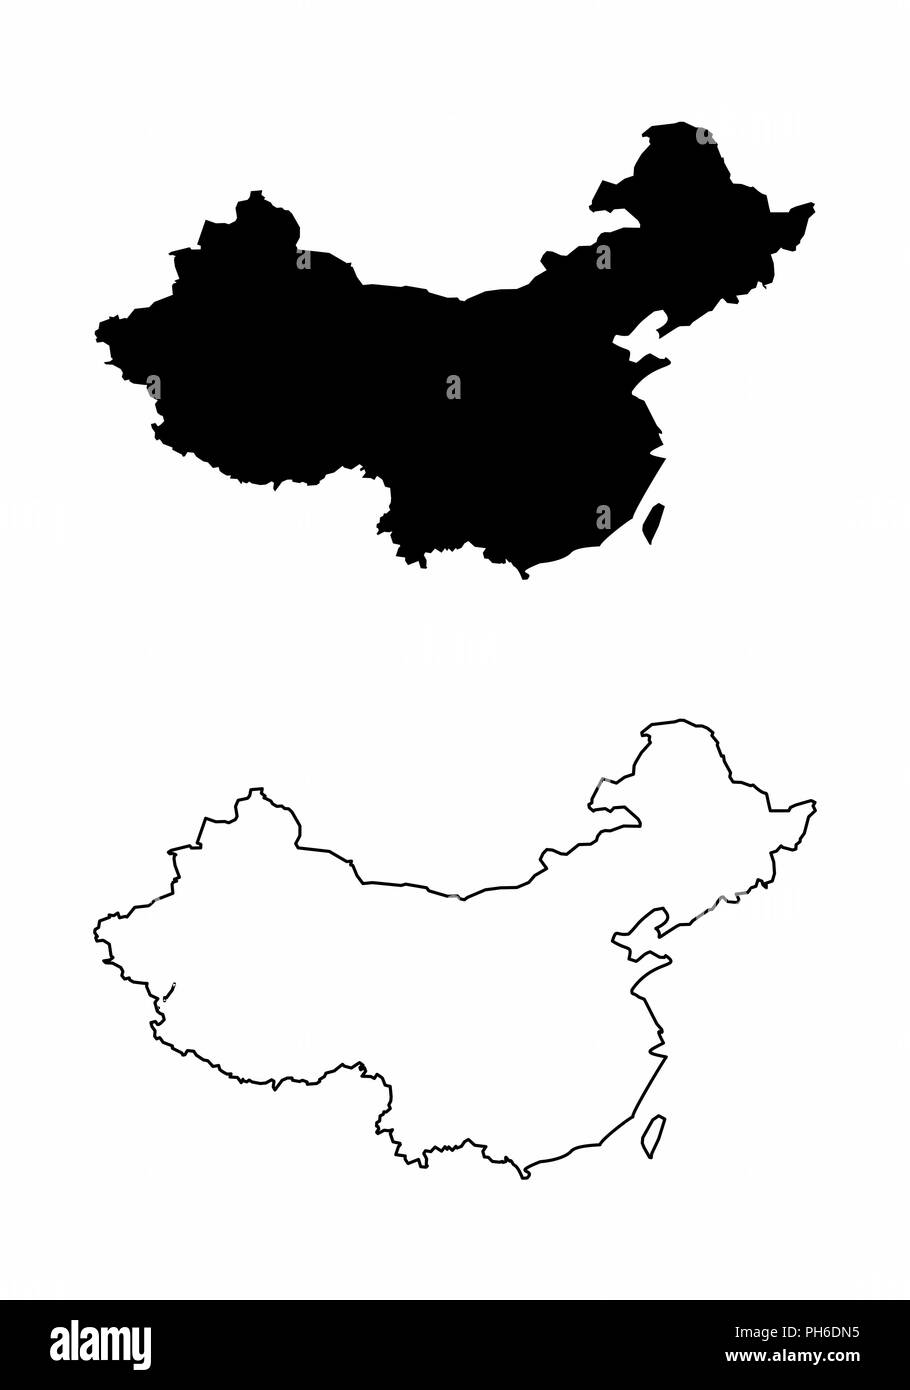 Simplified maps of China. Black and white outlines. - Stock Vector